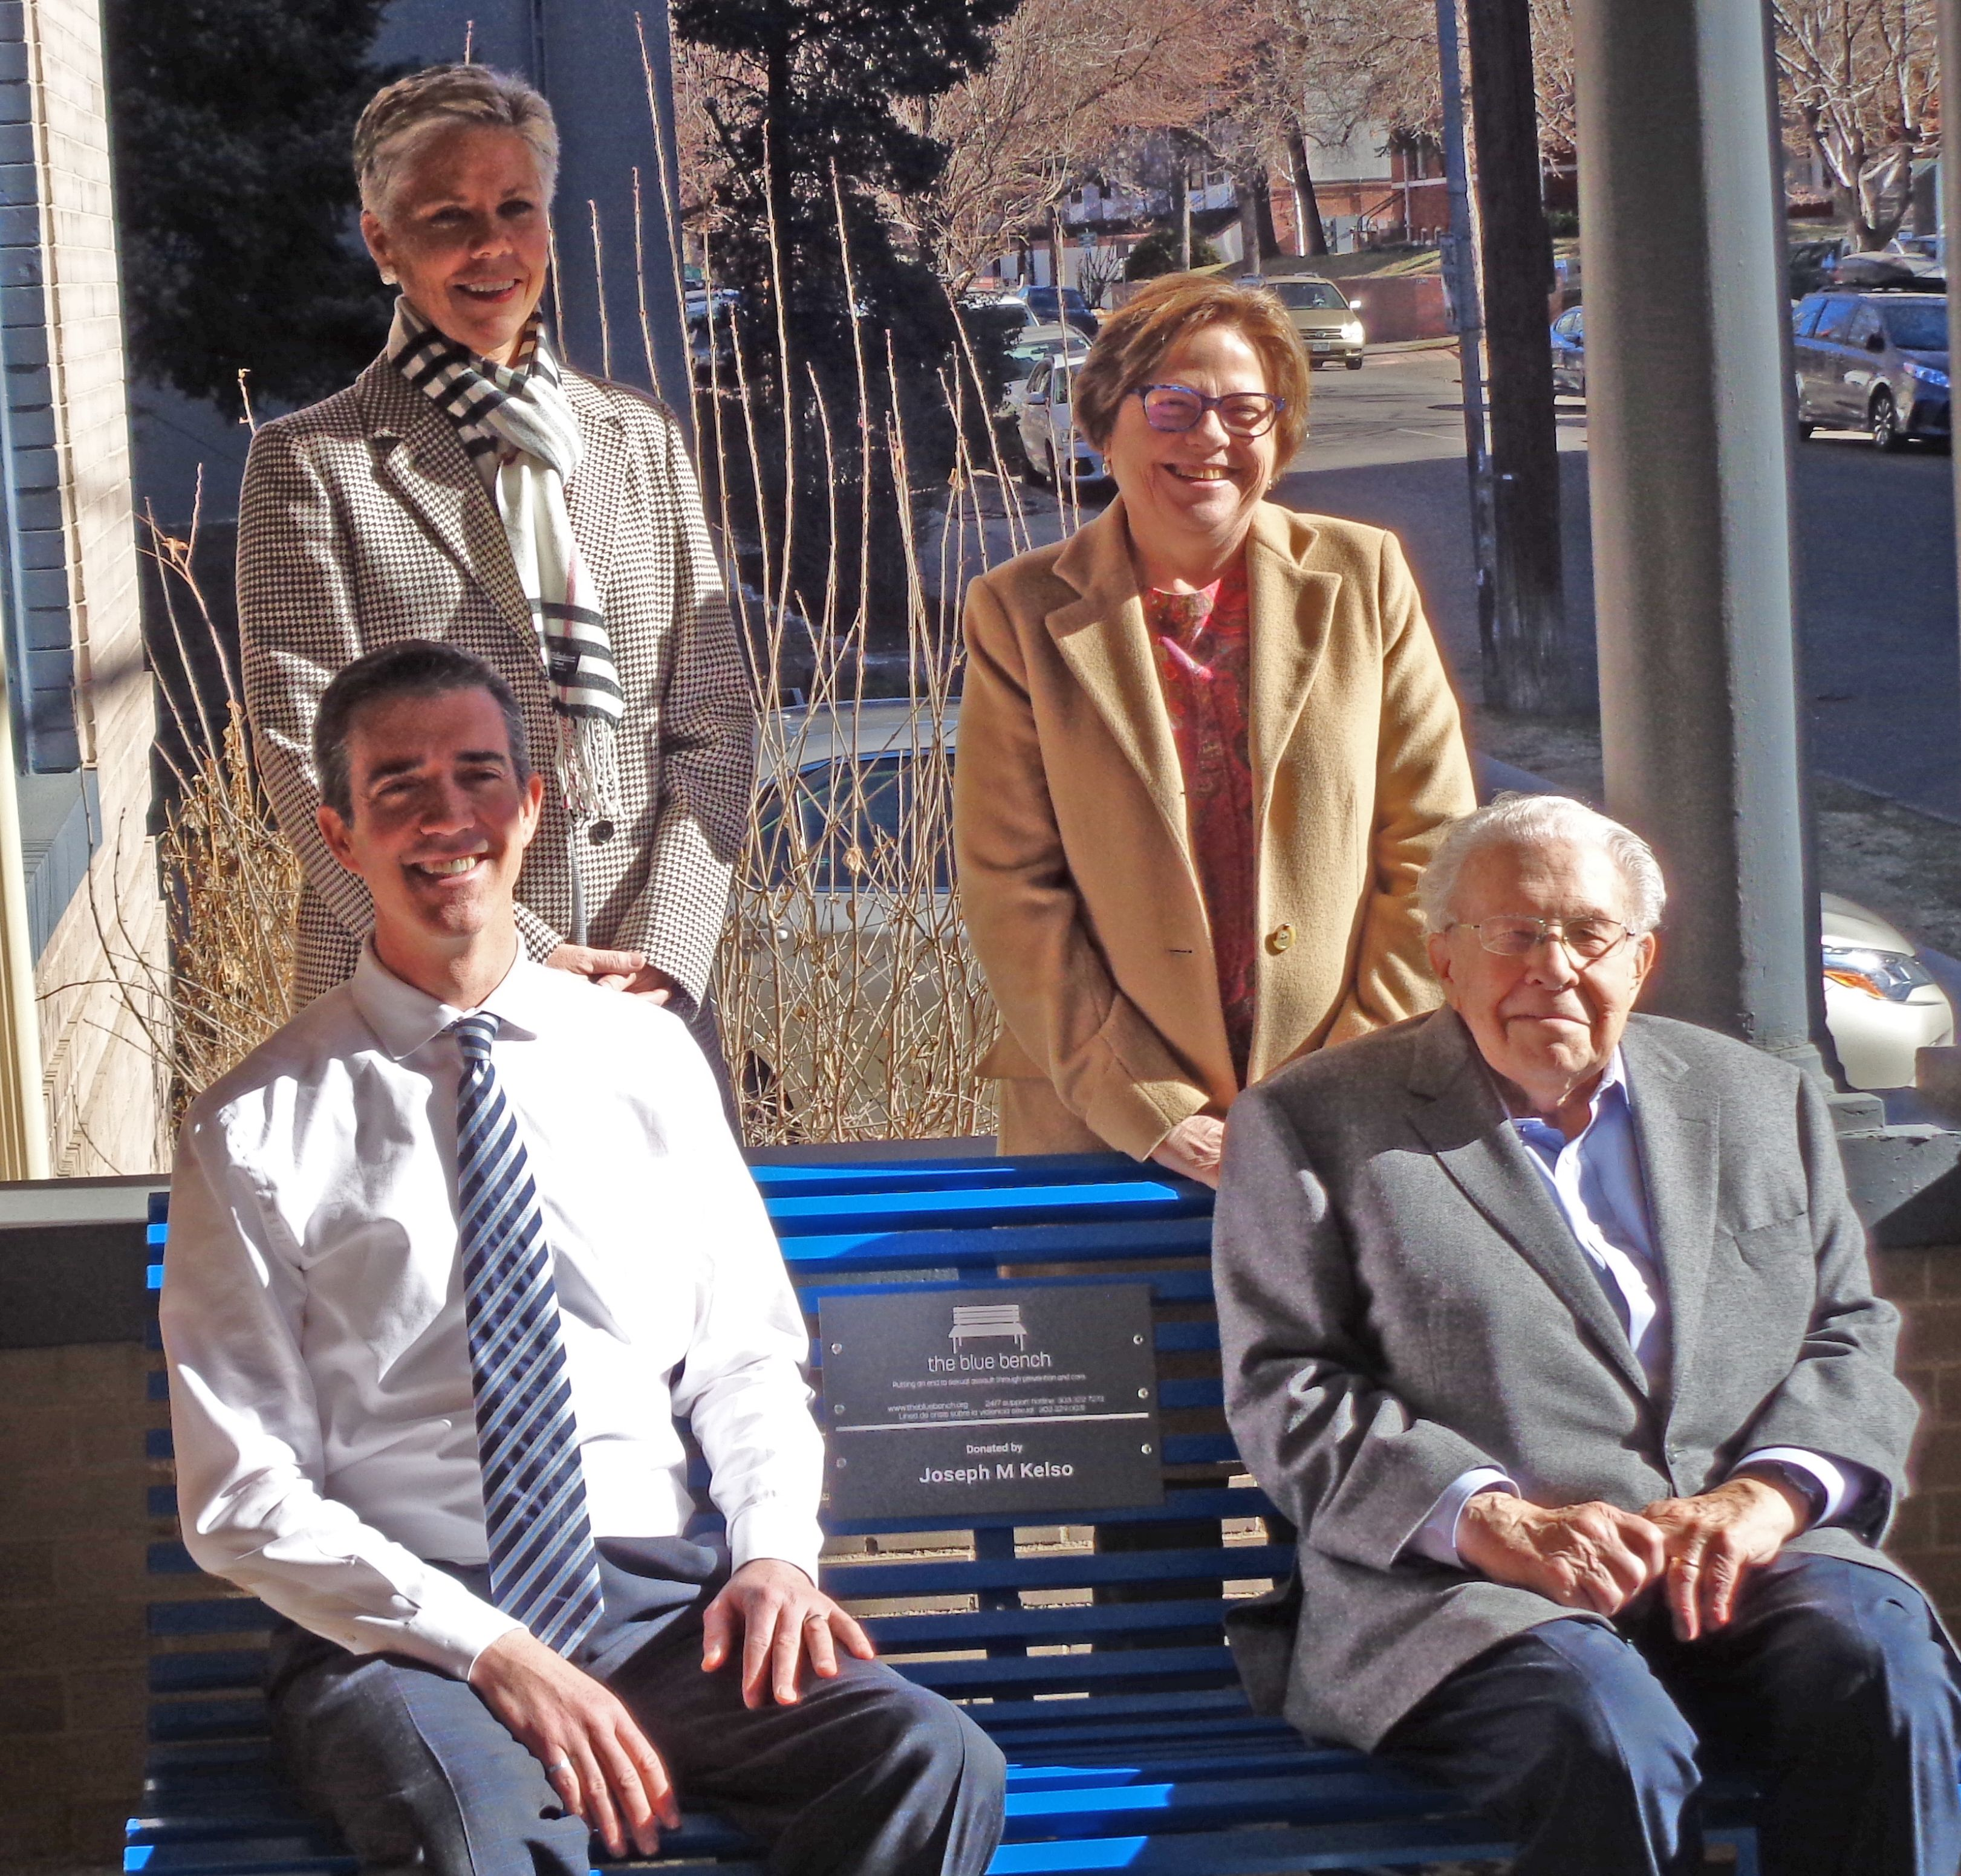 WARREN VILLAGE BECOMES THE NEWEST HOME OF A BLUE BENCH